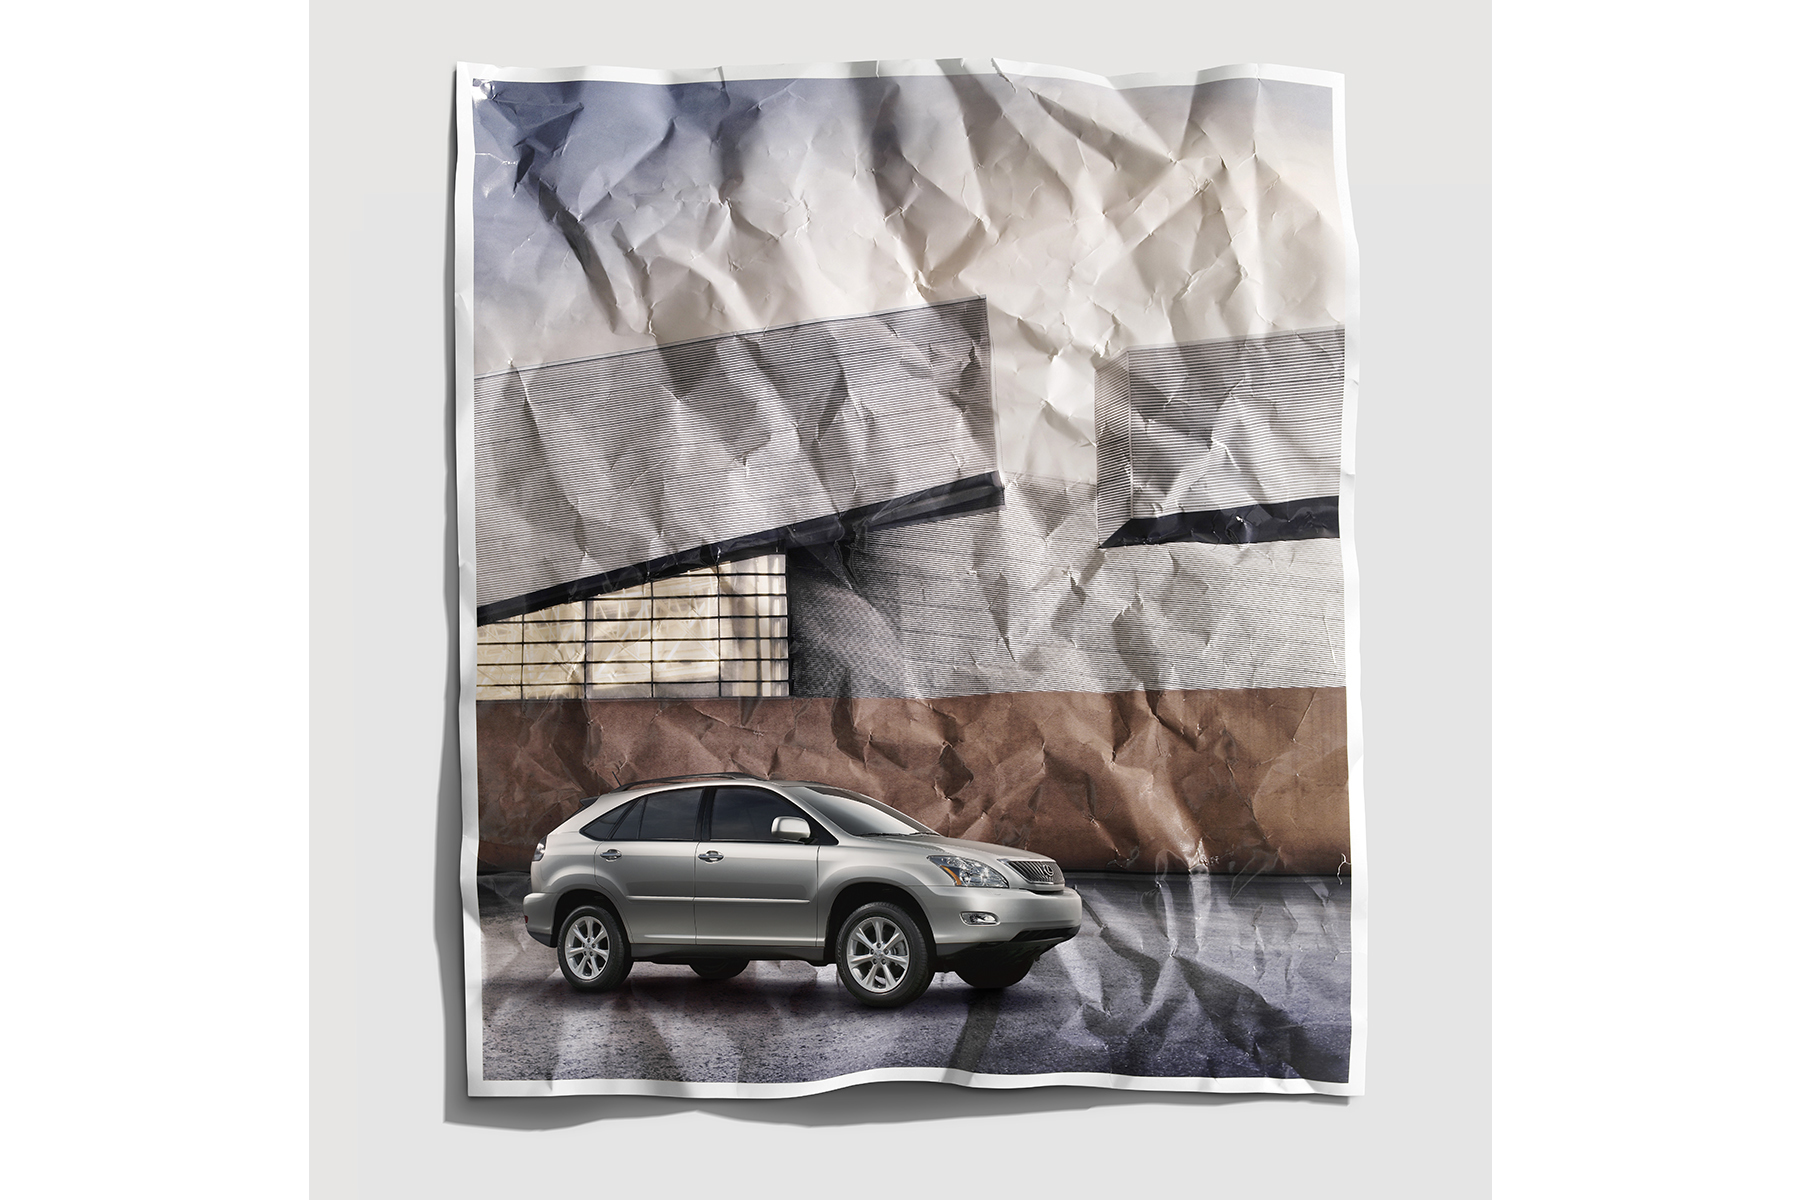 Lexus 'Wrinkled' / Team One / Planet Moore Photography